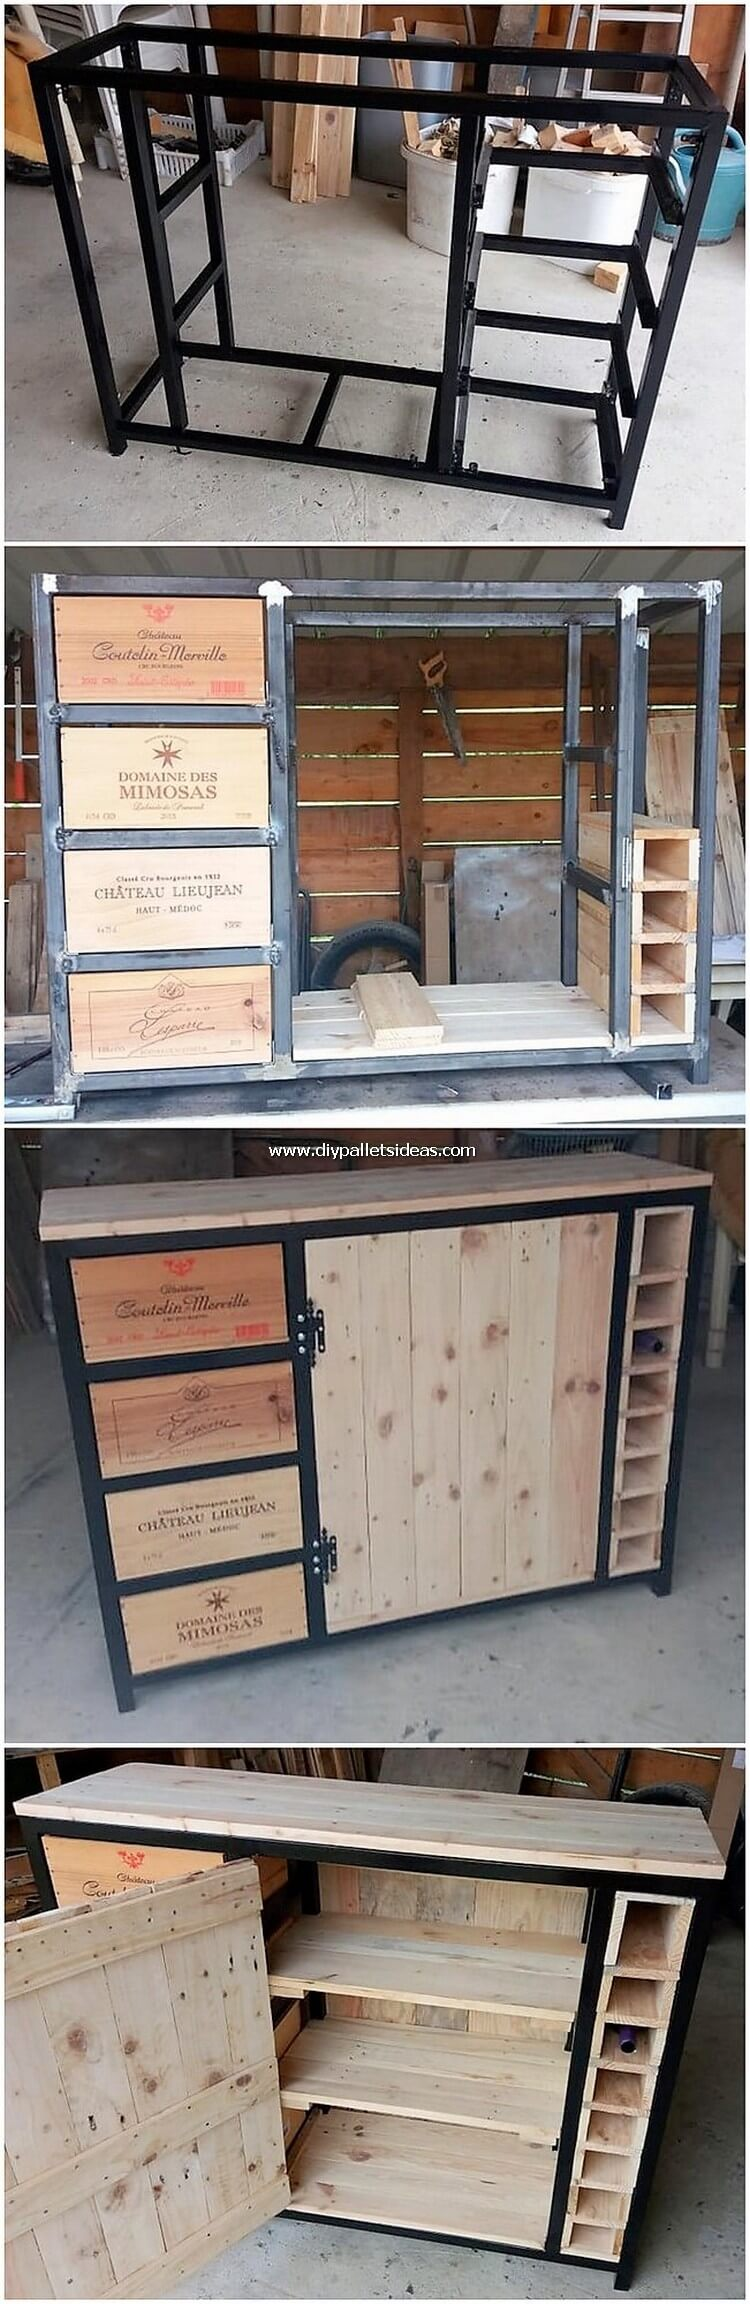 DIY Pallet Cabinet with Drawers